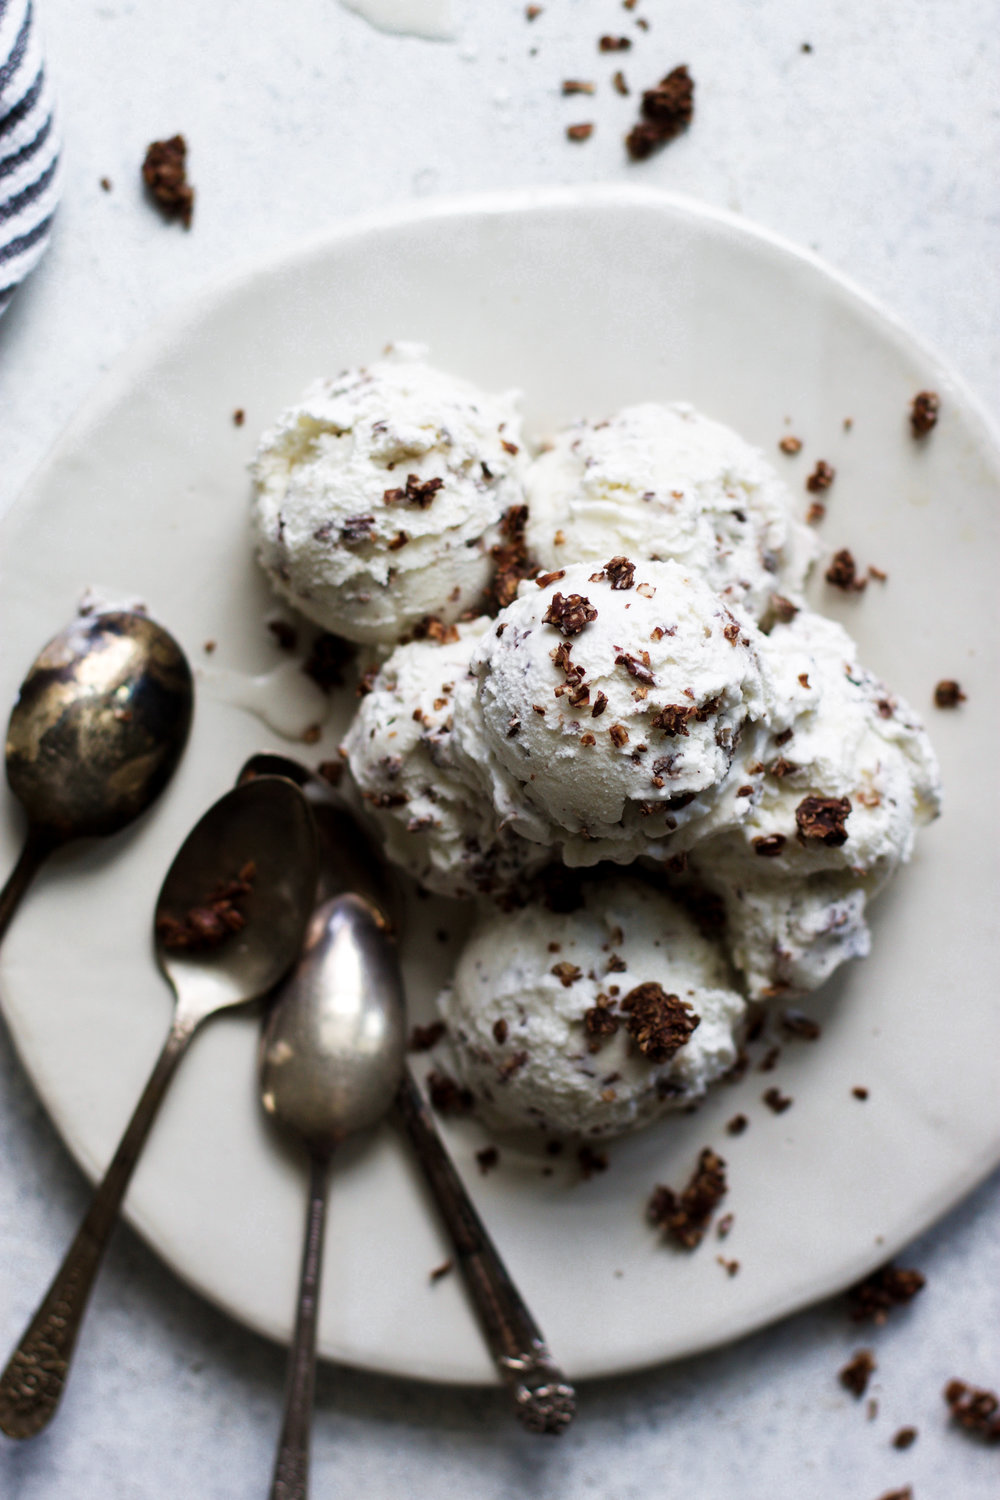 Chocolate Coated Toasted Coconut Ice Cream: My Diary of Us